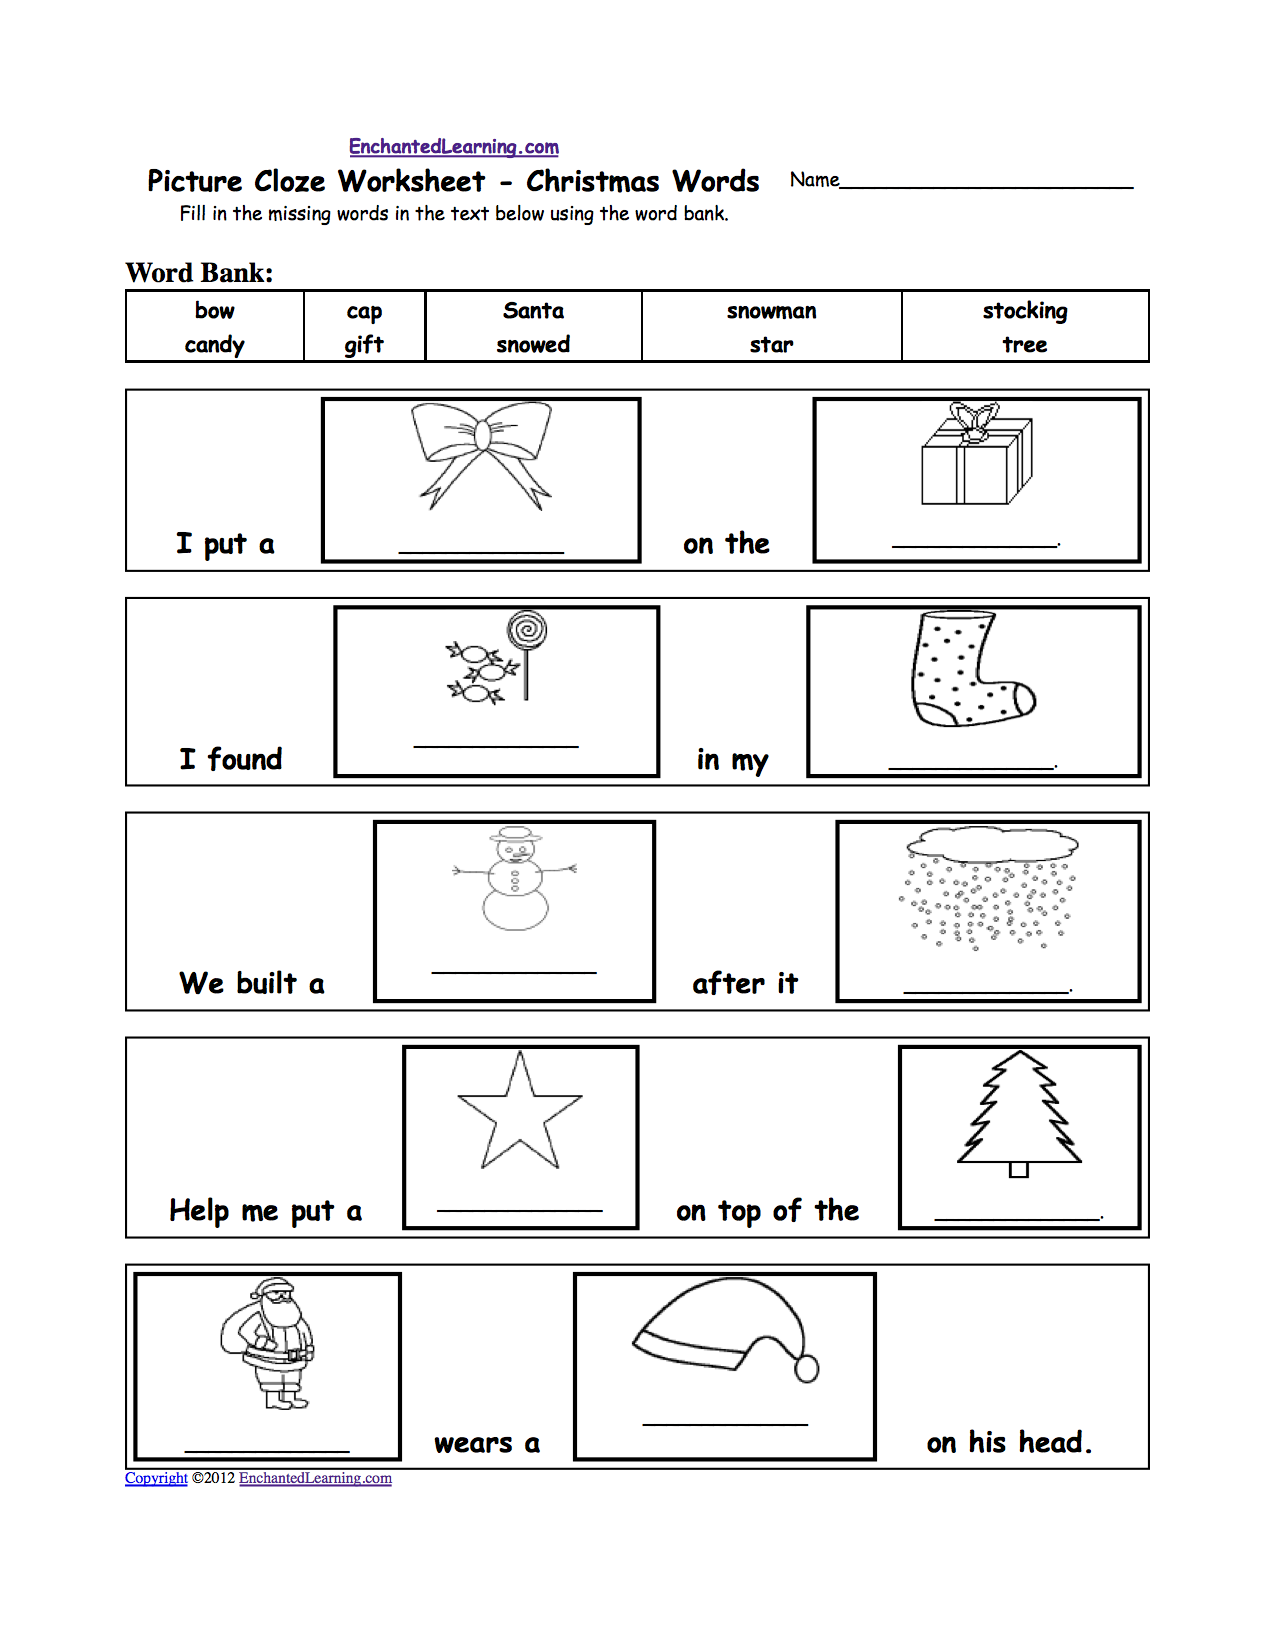 Printables Cloze Worksheets picture cloze worksheets enchantedlearning com cloze